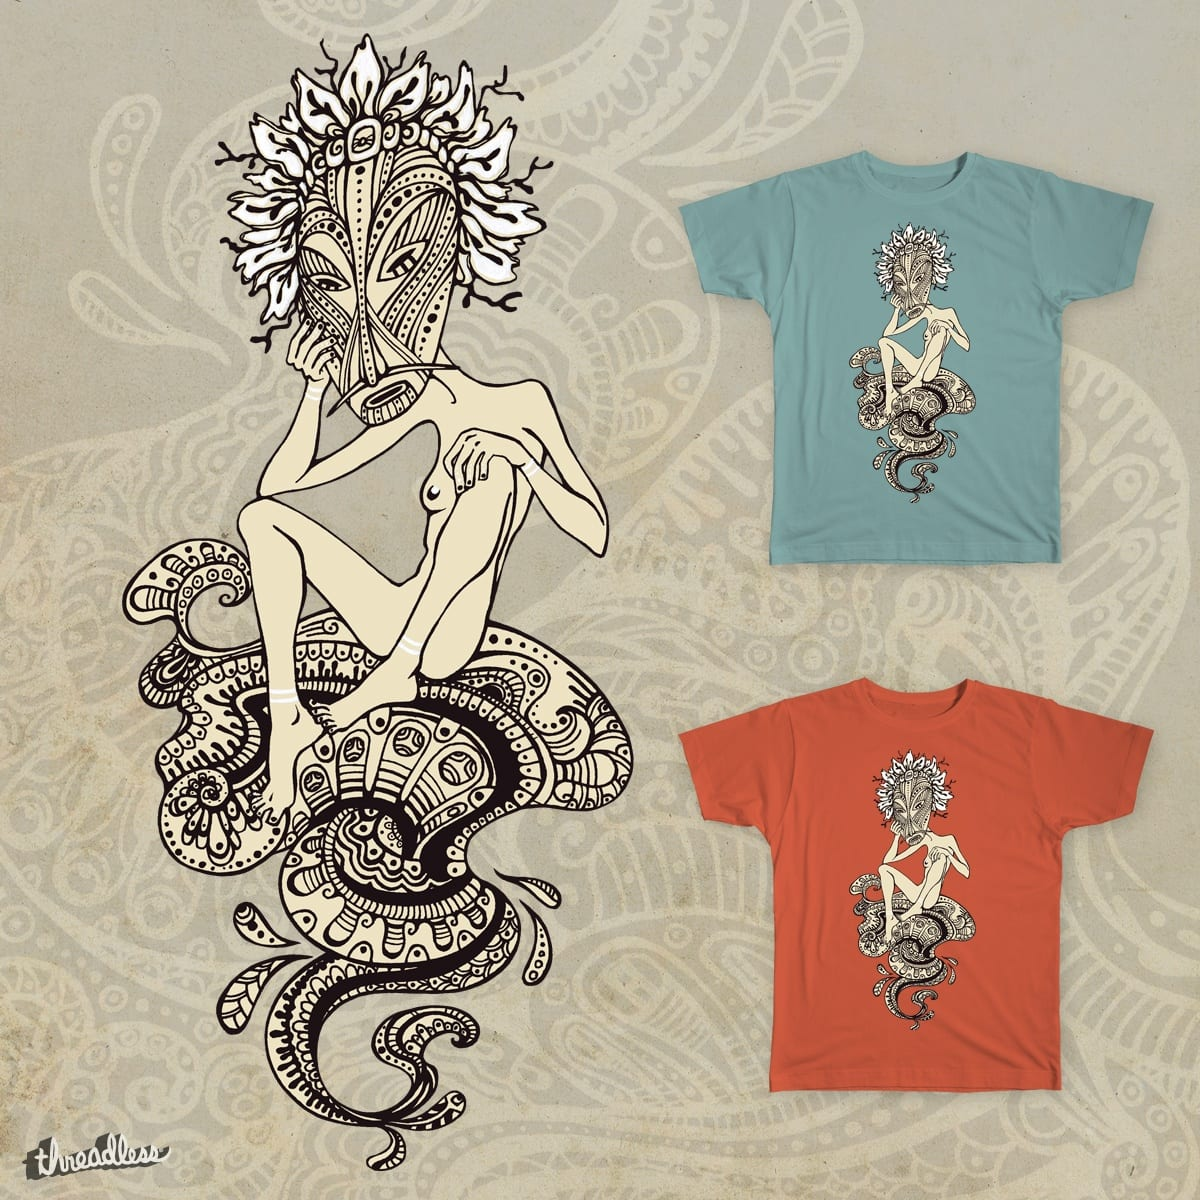 First woman by Sudjino on Threadless